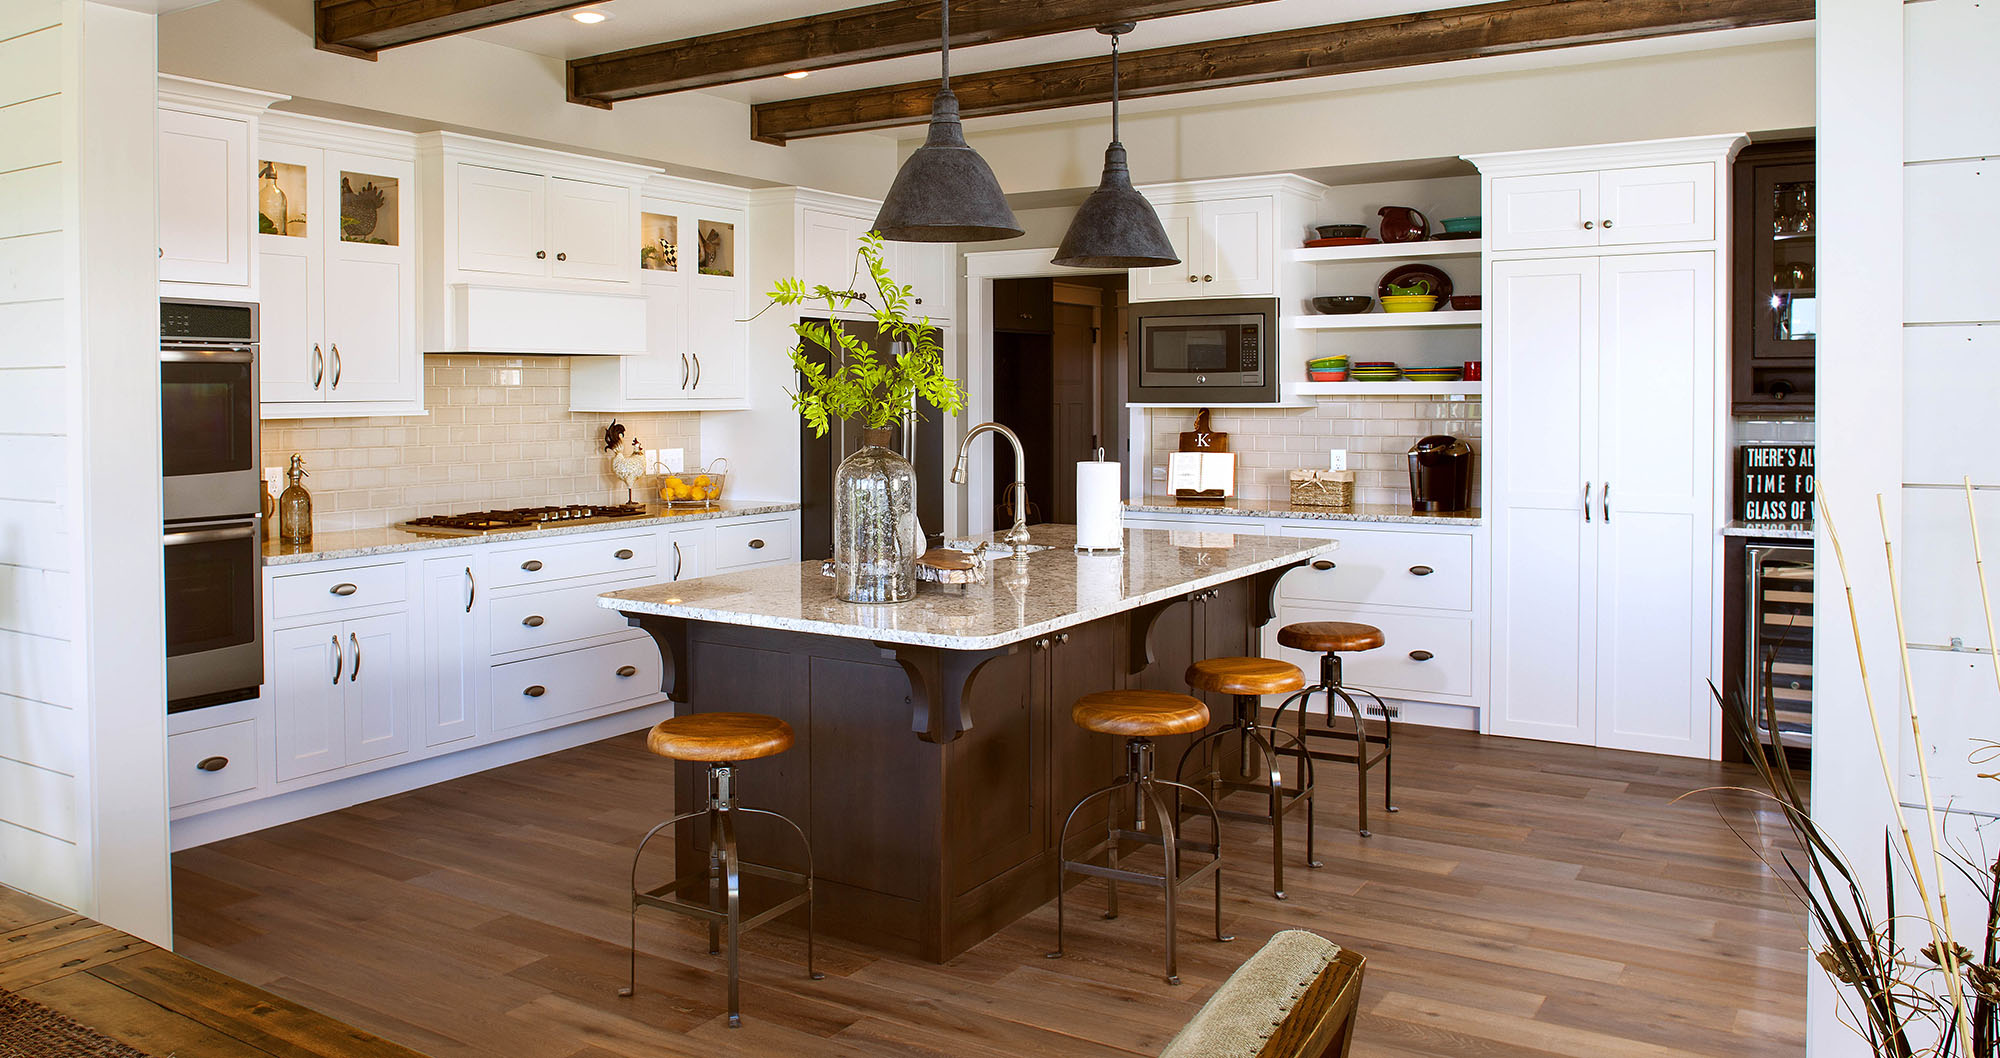 Painted Kitchen Cabinets In White By Showplace Cabinetry  View2